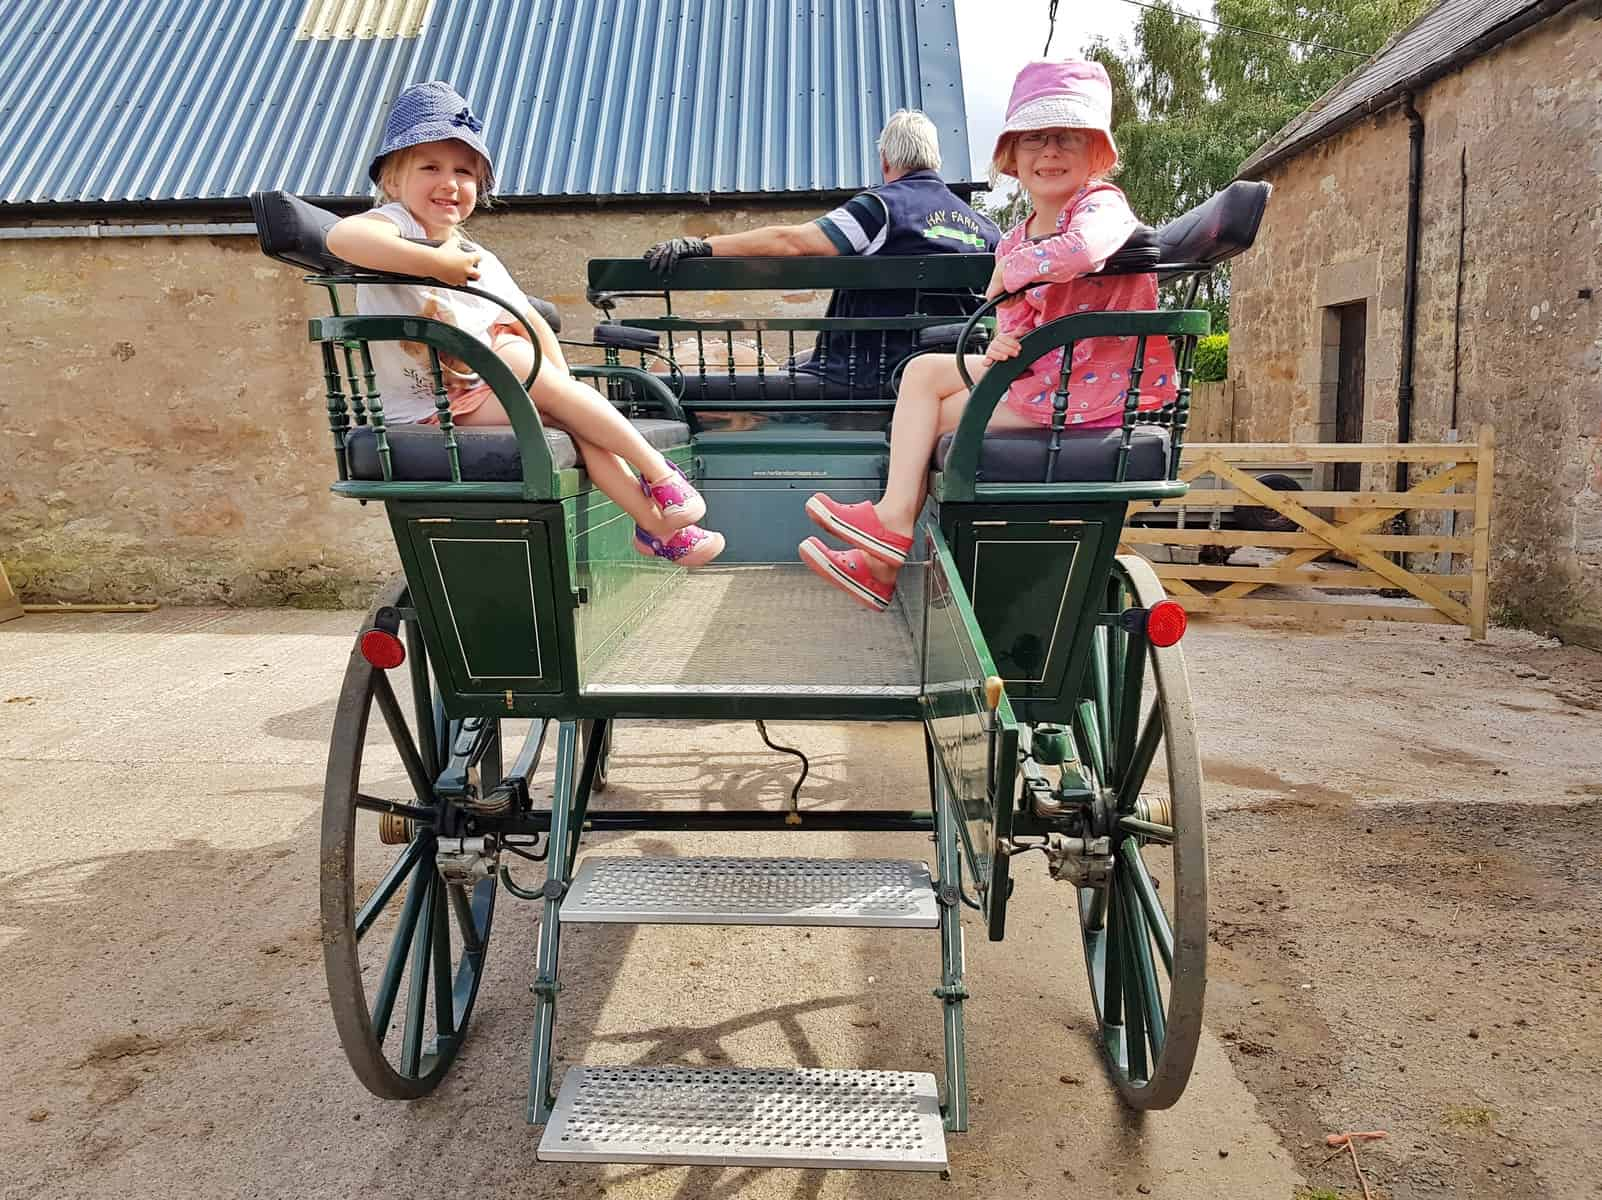 Ford and Etal Hay Farm children on carriage ride